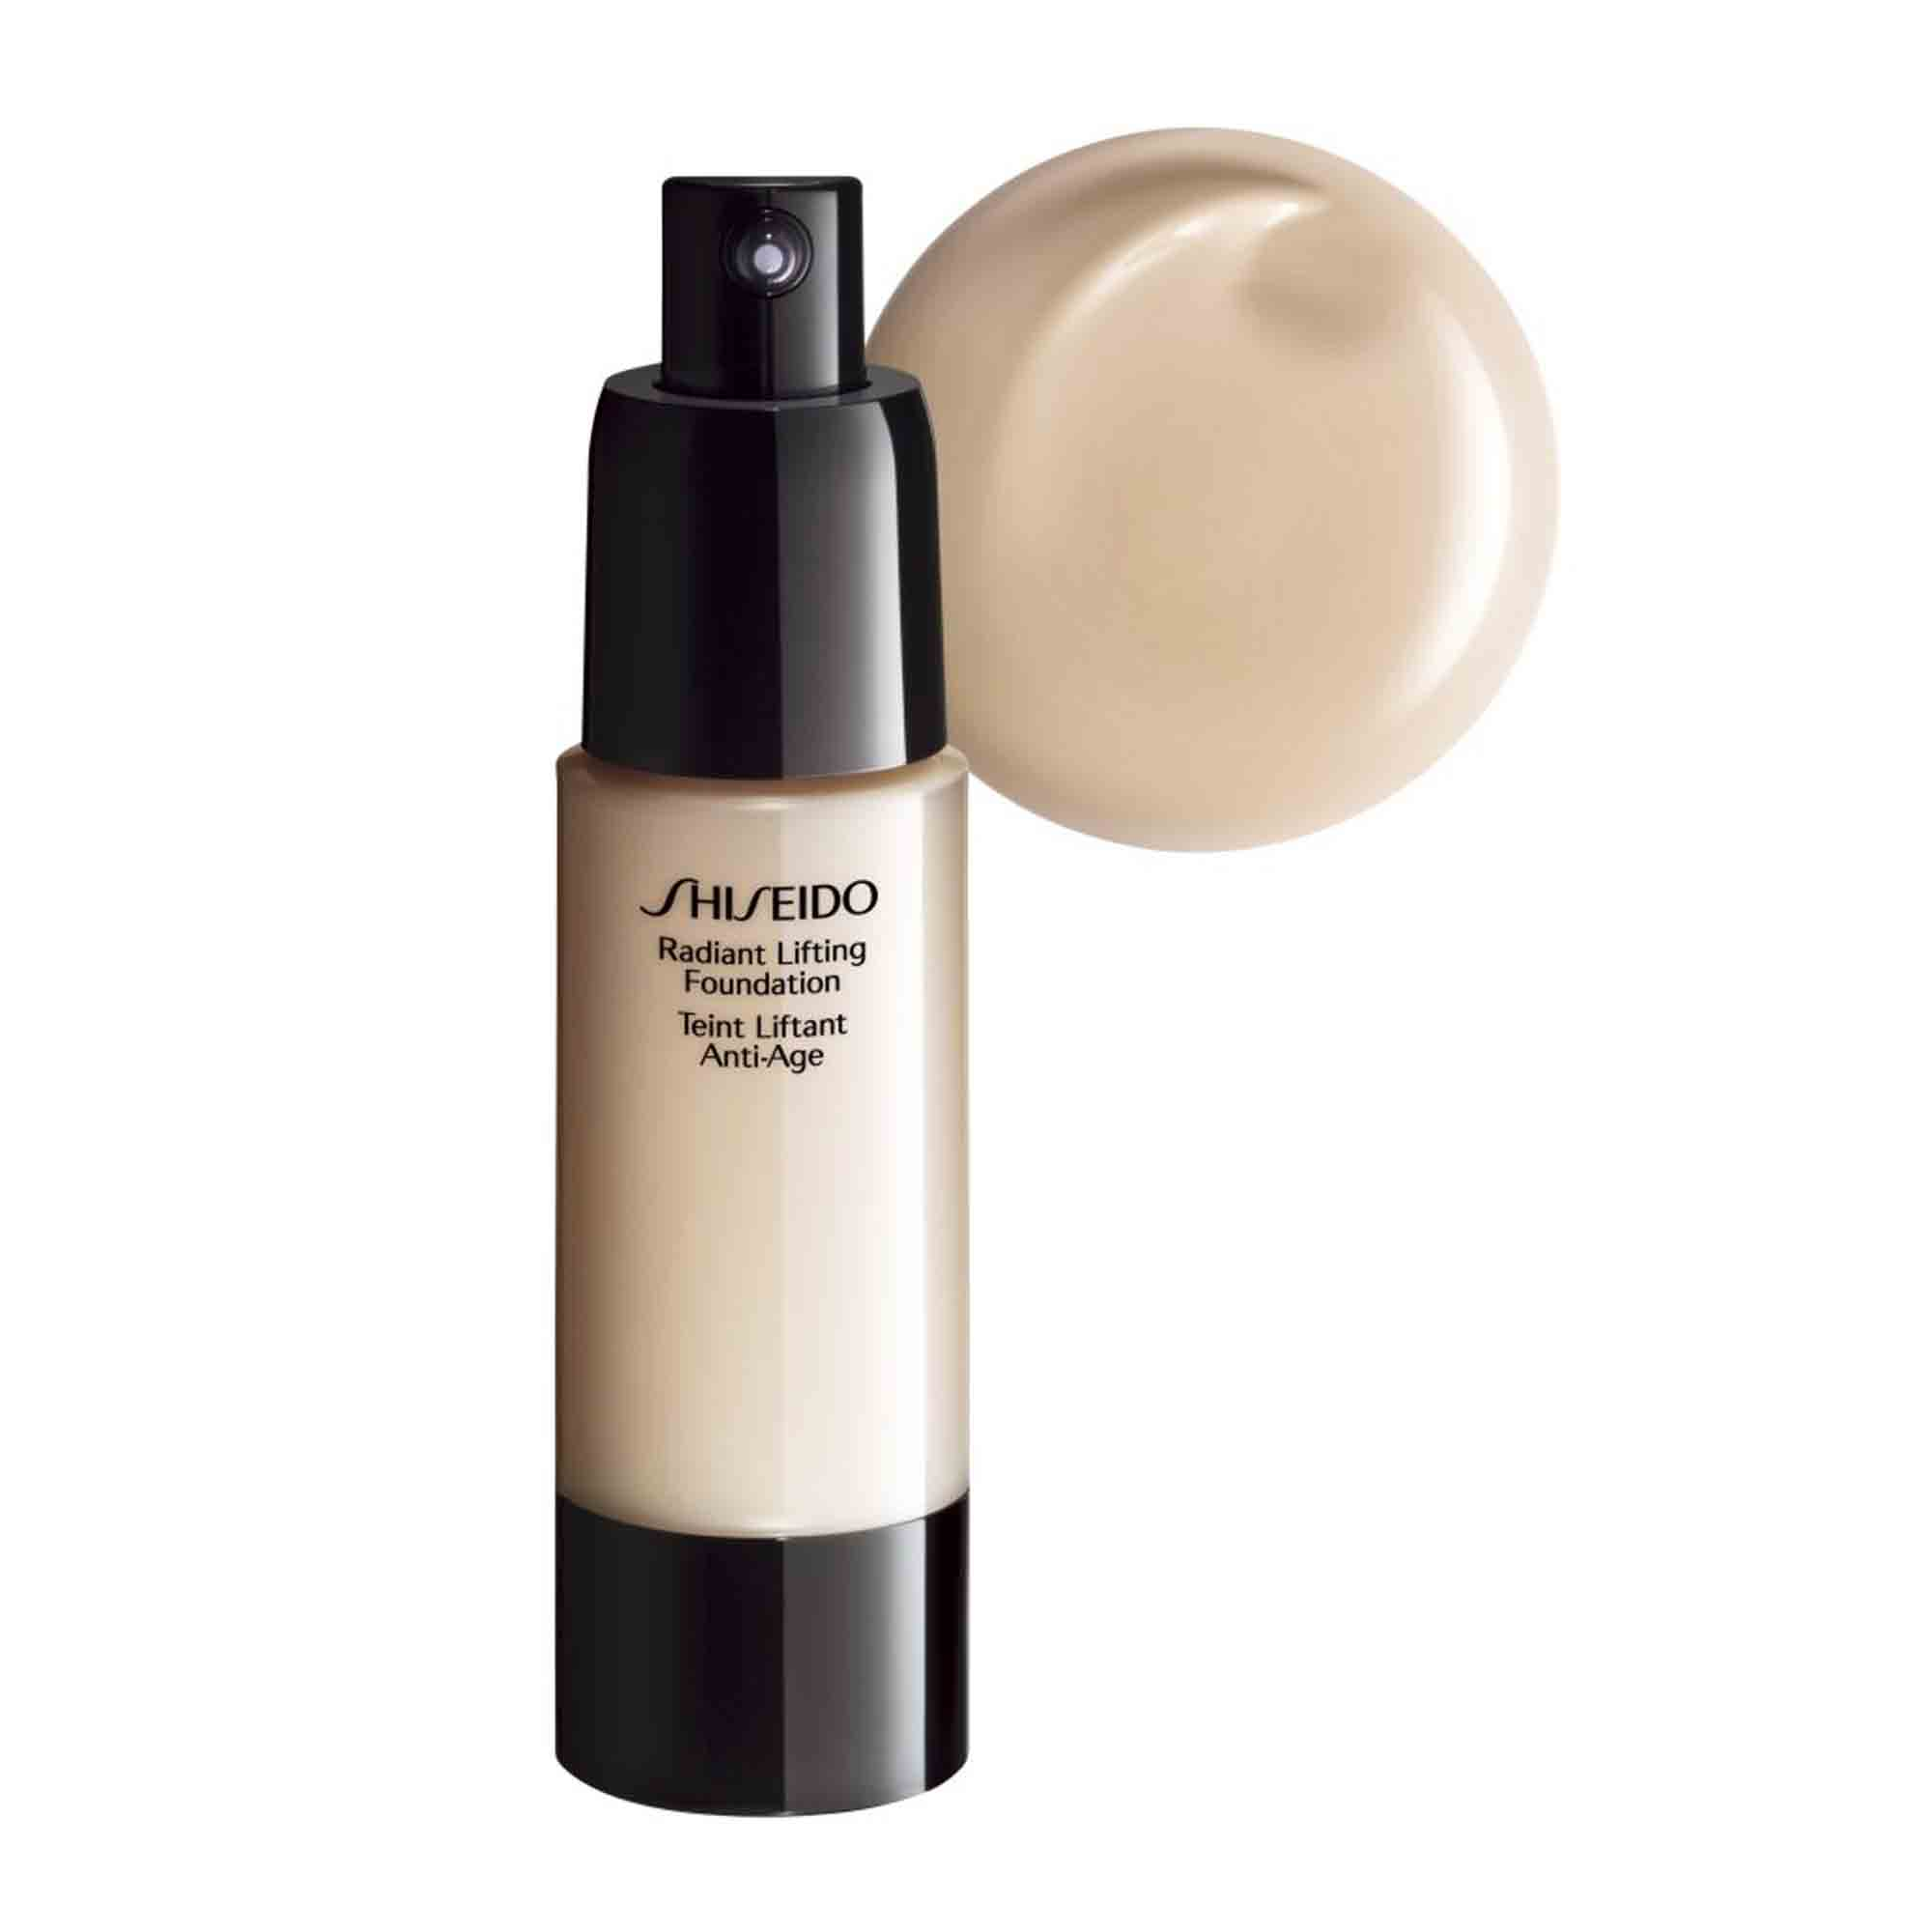 ... shiseido picture of radiant lifting foundation ...